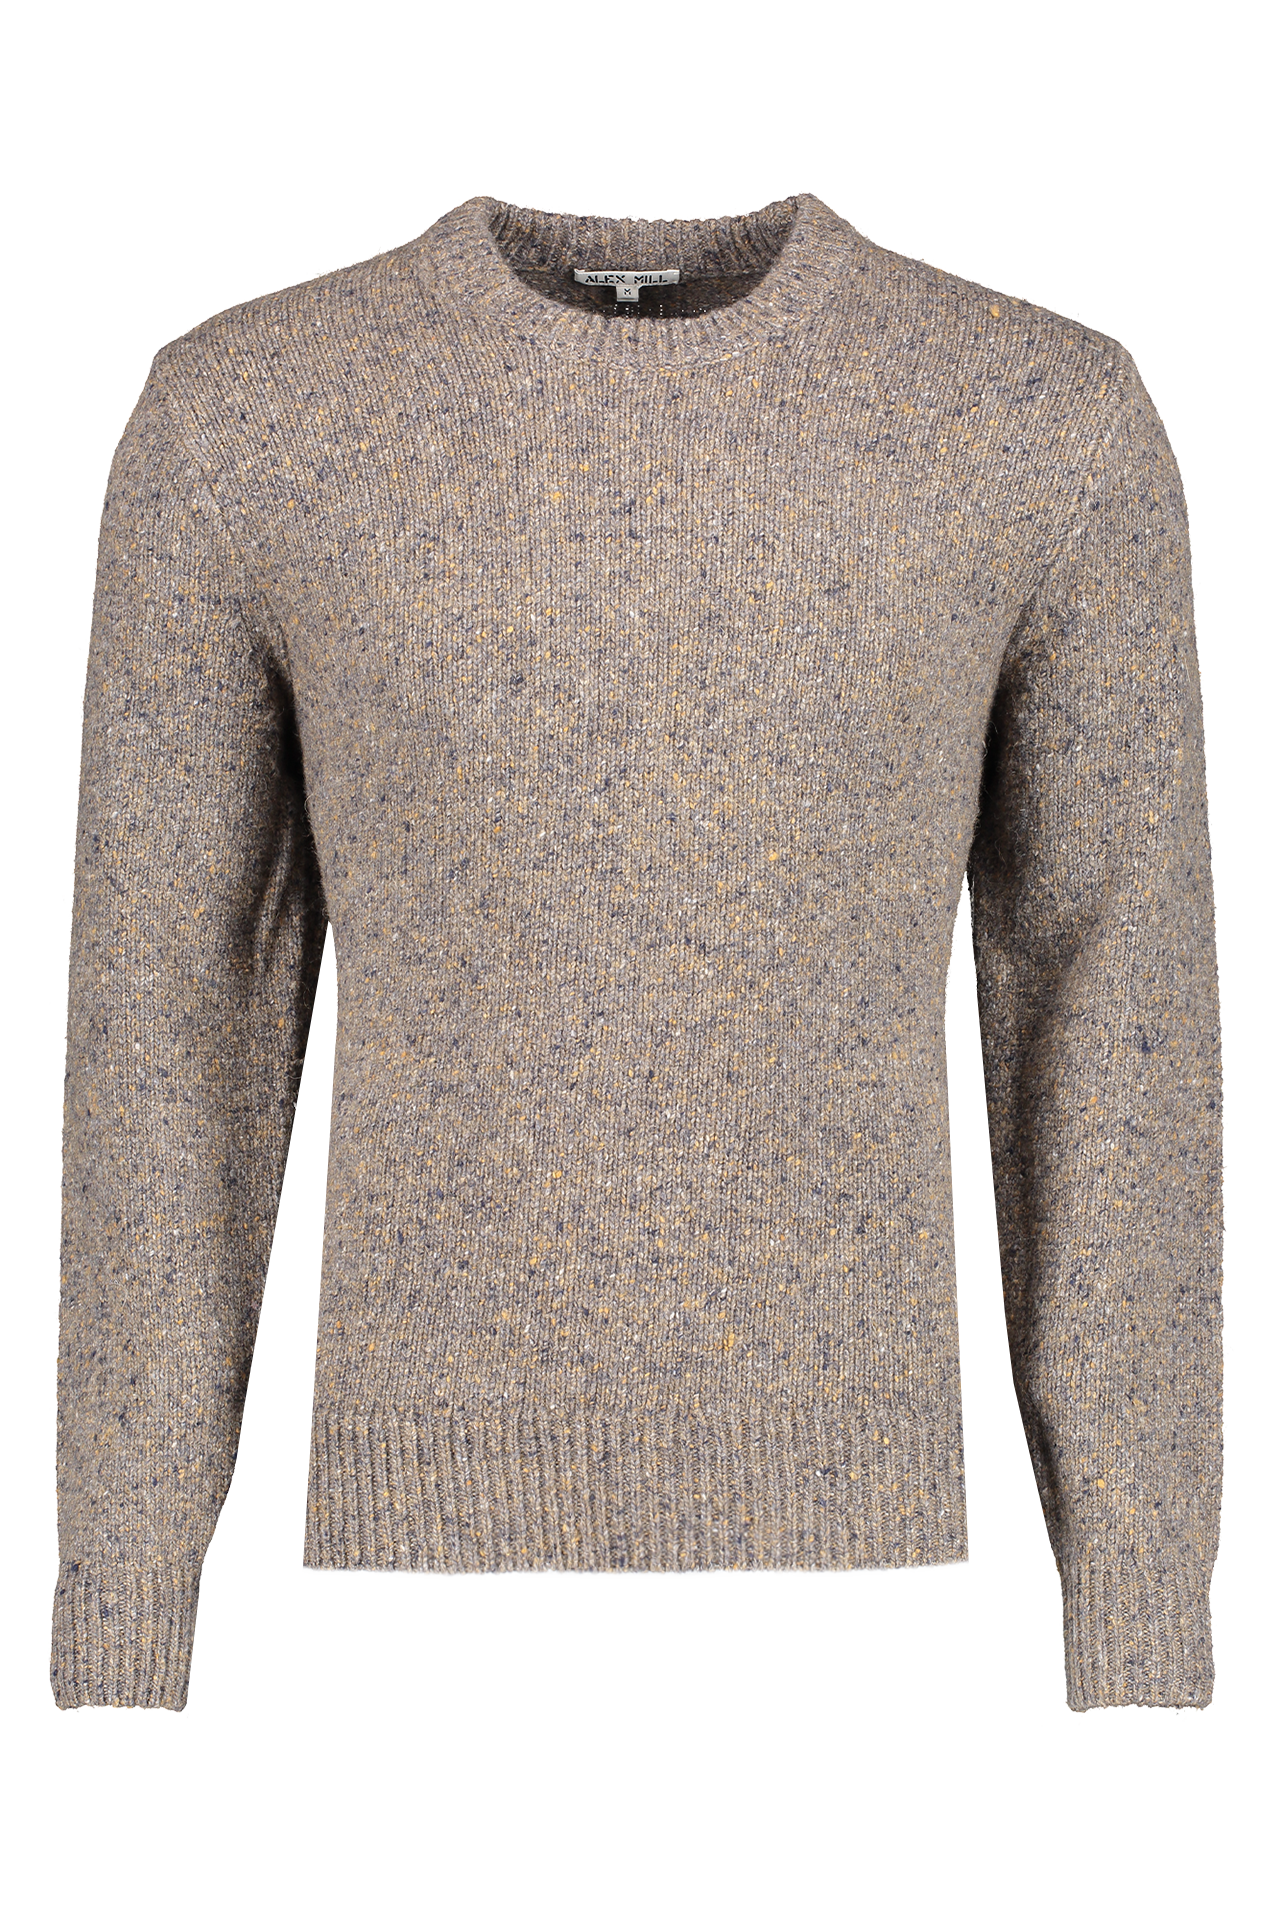 Front Crop Image Of Alex Mill Men's Donegal Crewneck Sweater Spinney